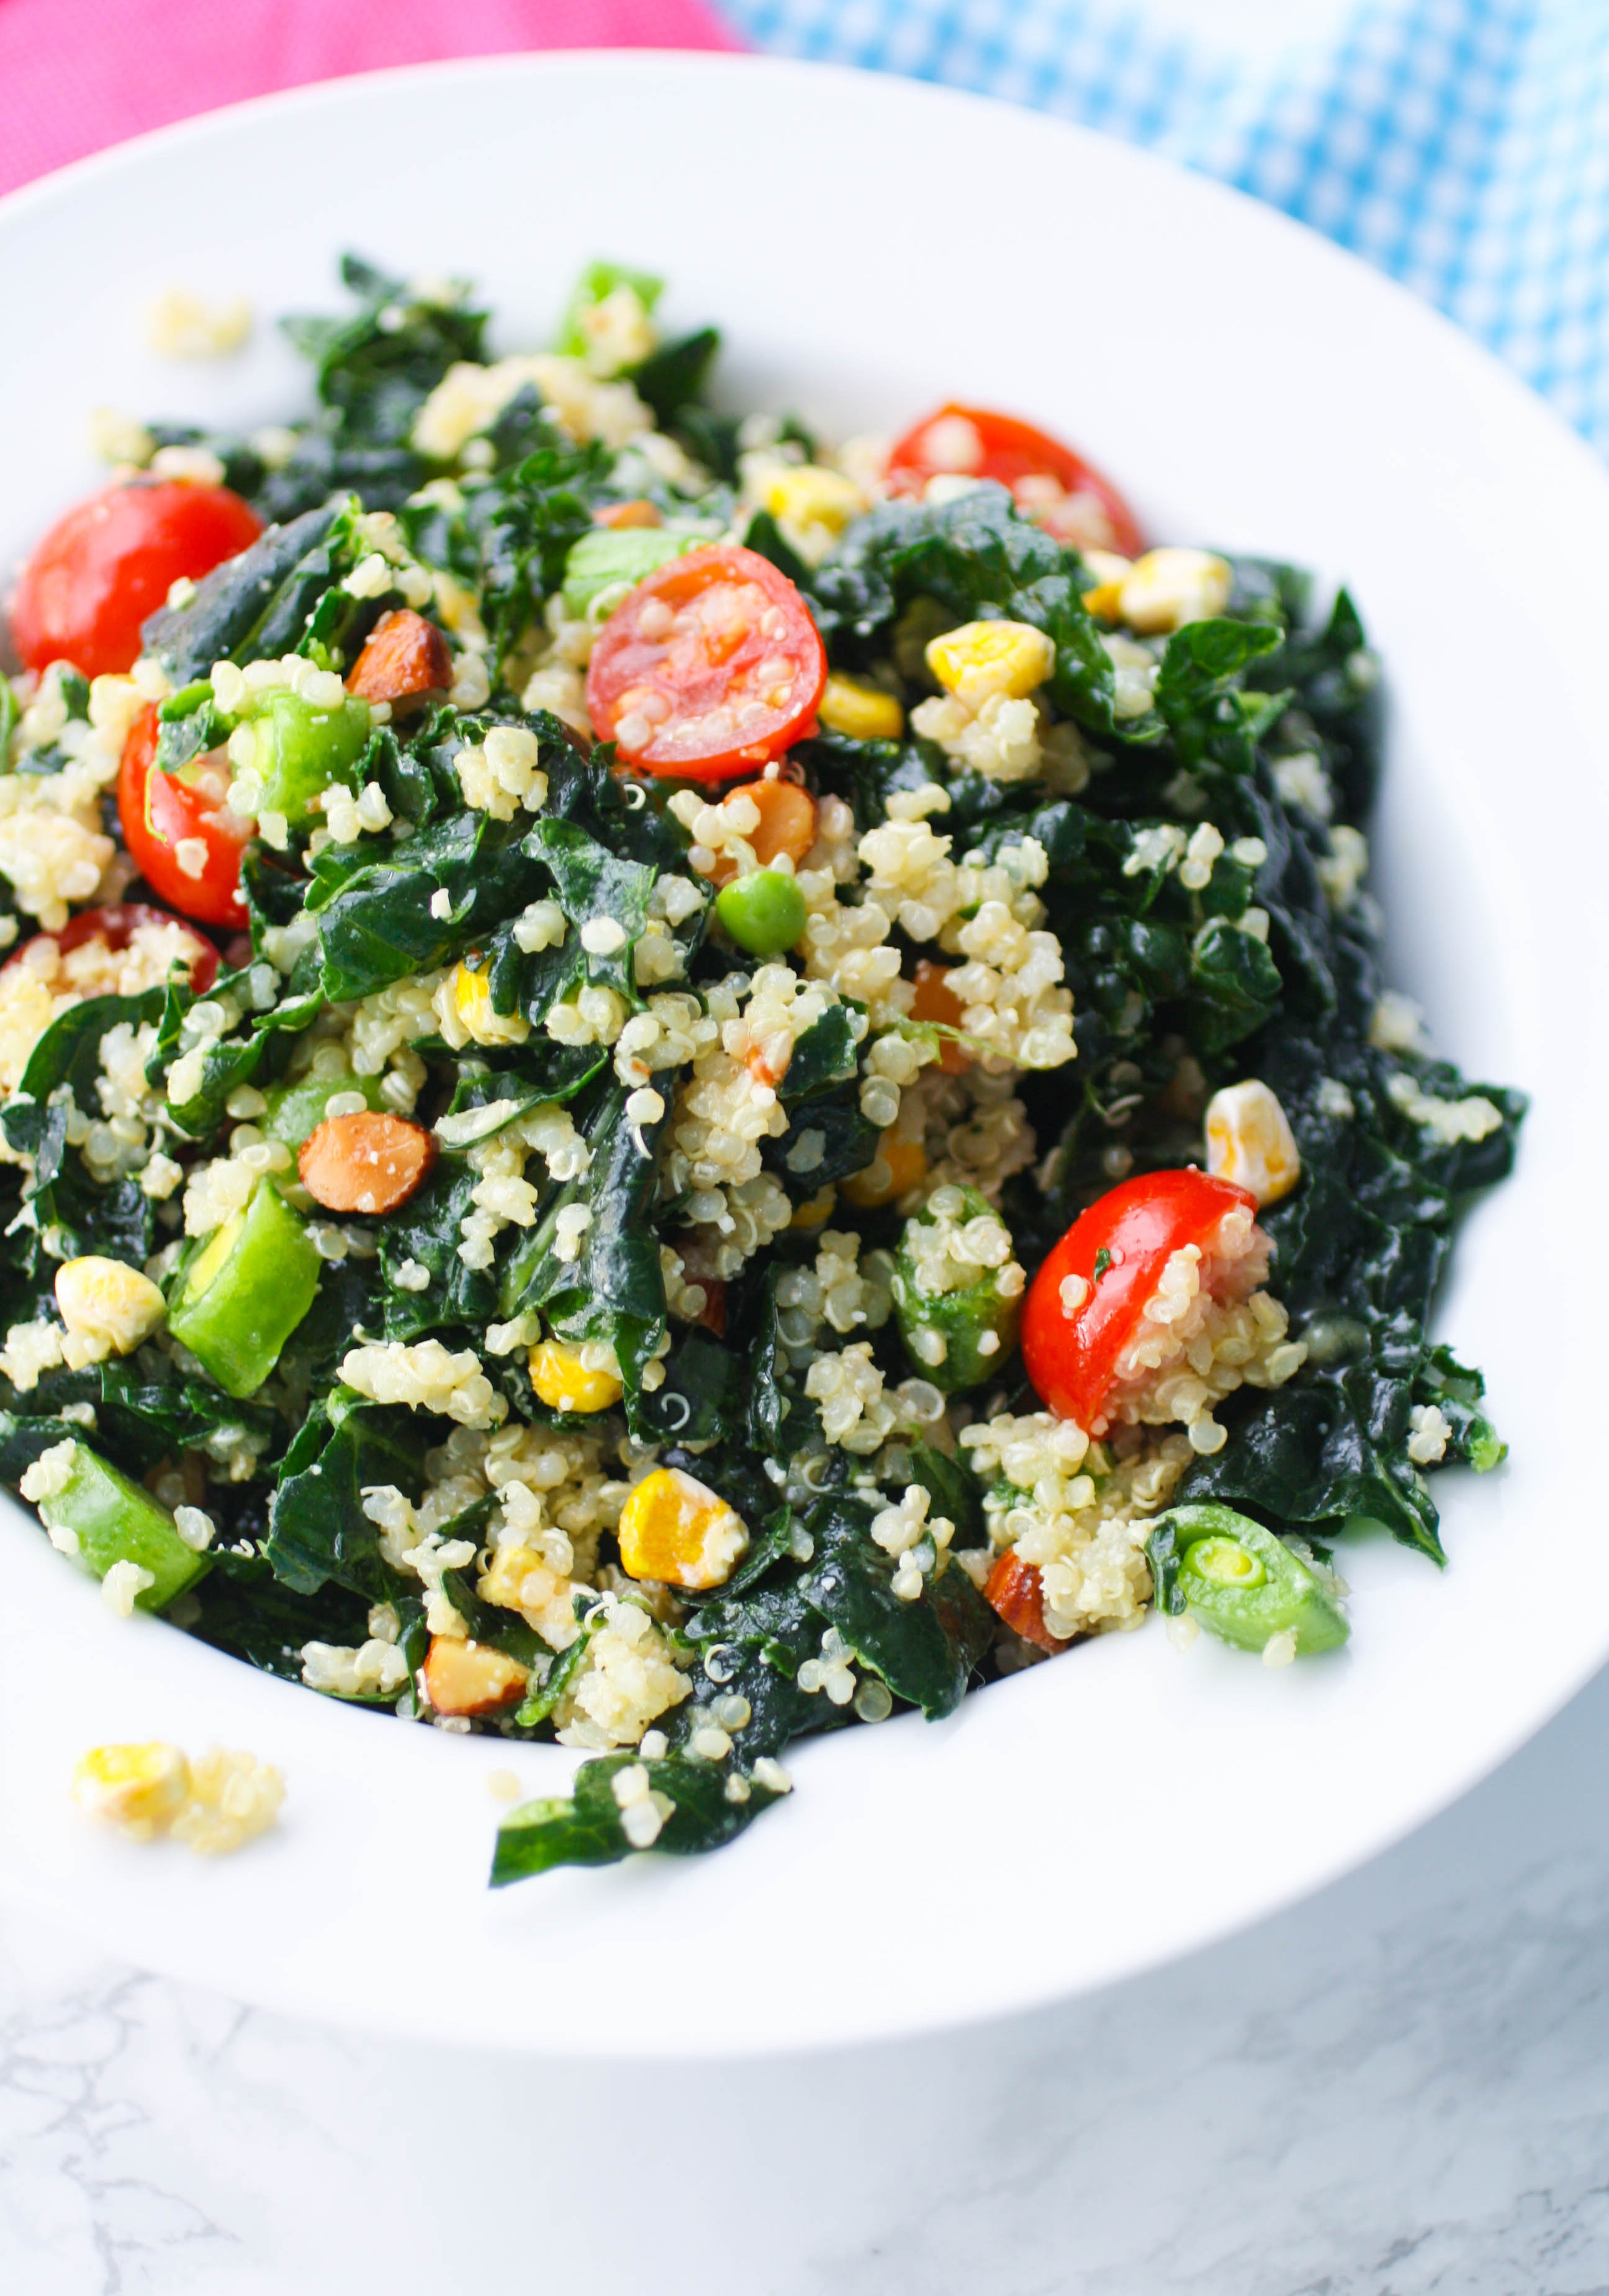 Kale and Quinoa Salad with Honey-Dijon Dressing is a healthy salad that will satisfy your hunger. You'll love this Kale and Quinoa Salad with Honey-Dijon Dressing.